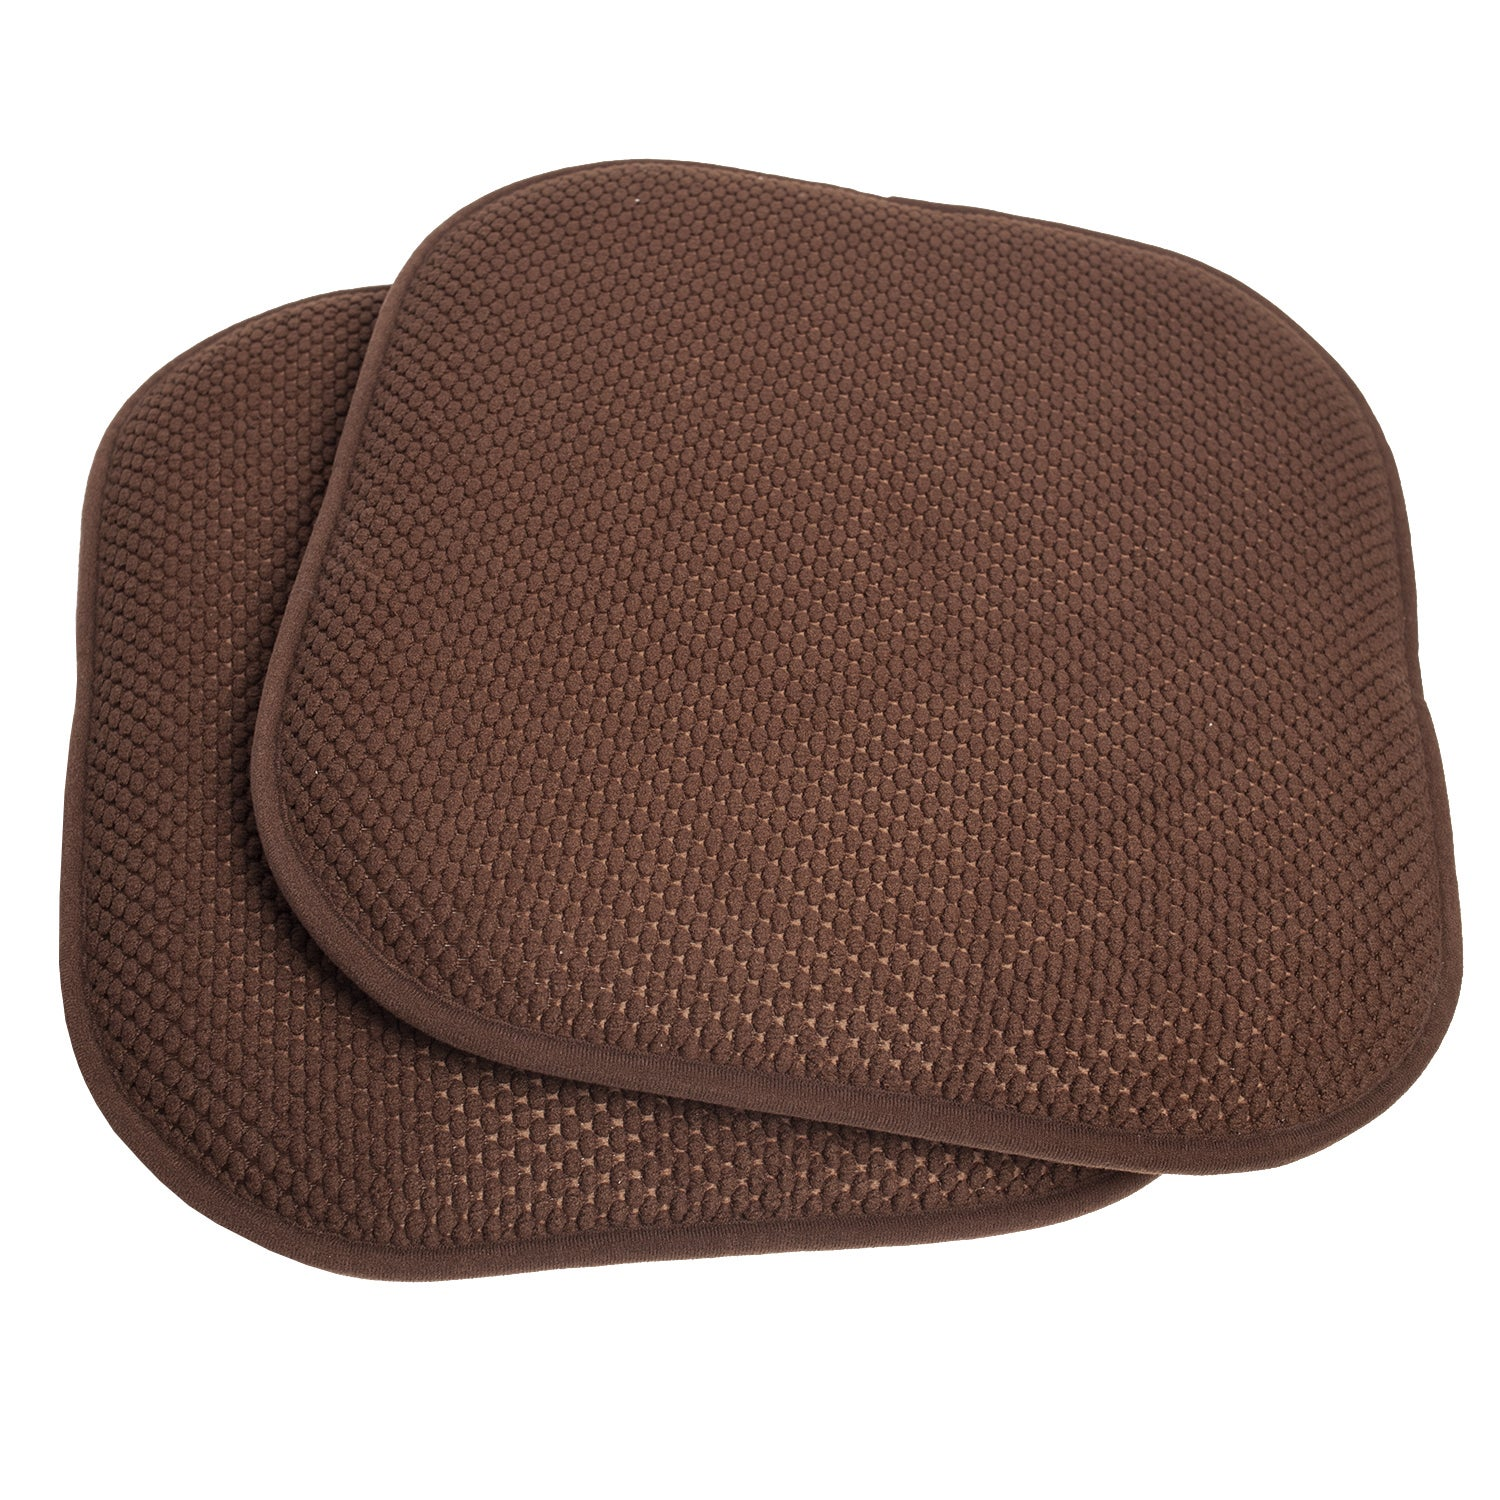 Shop 16x16 Memory Foam Chair Pad/Seat Cushion with Non-Slip Backing ...